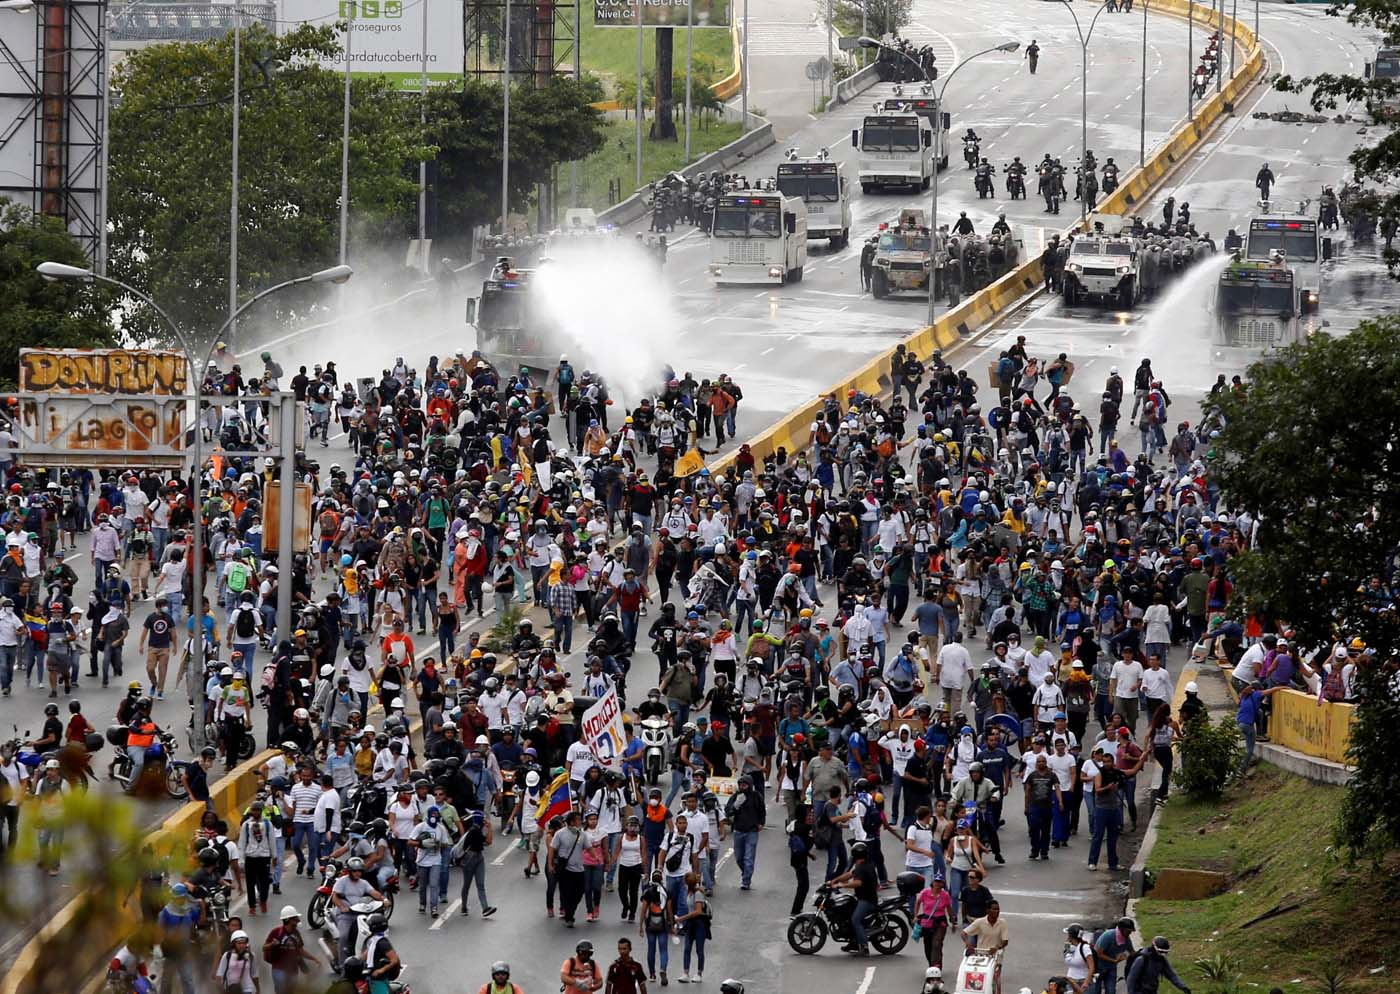 Demonstrators clash with riot security forces while rallying against President Nicolas Maduro in Caracas, Venezuela, May 24, 2017. REUTERS/Marco Bello